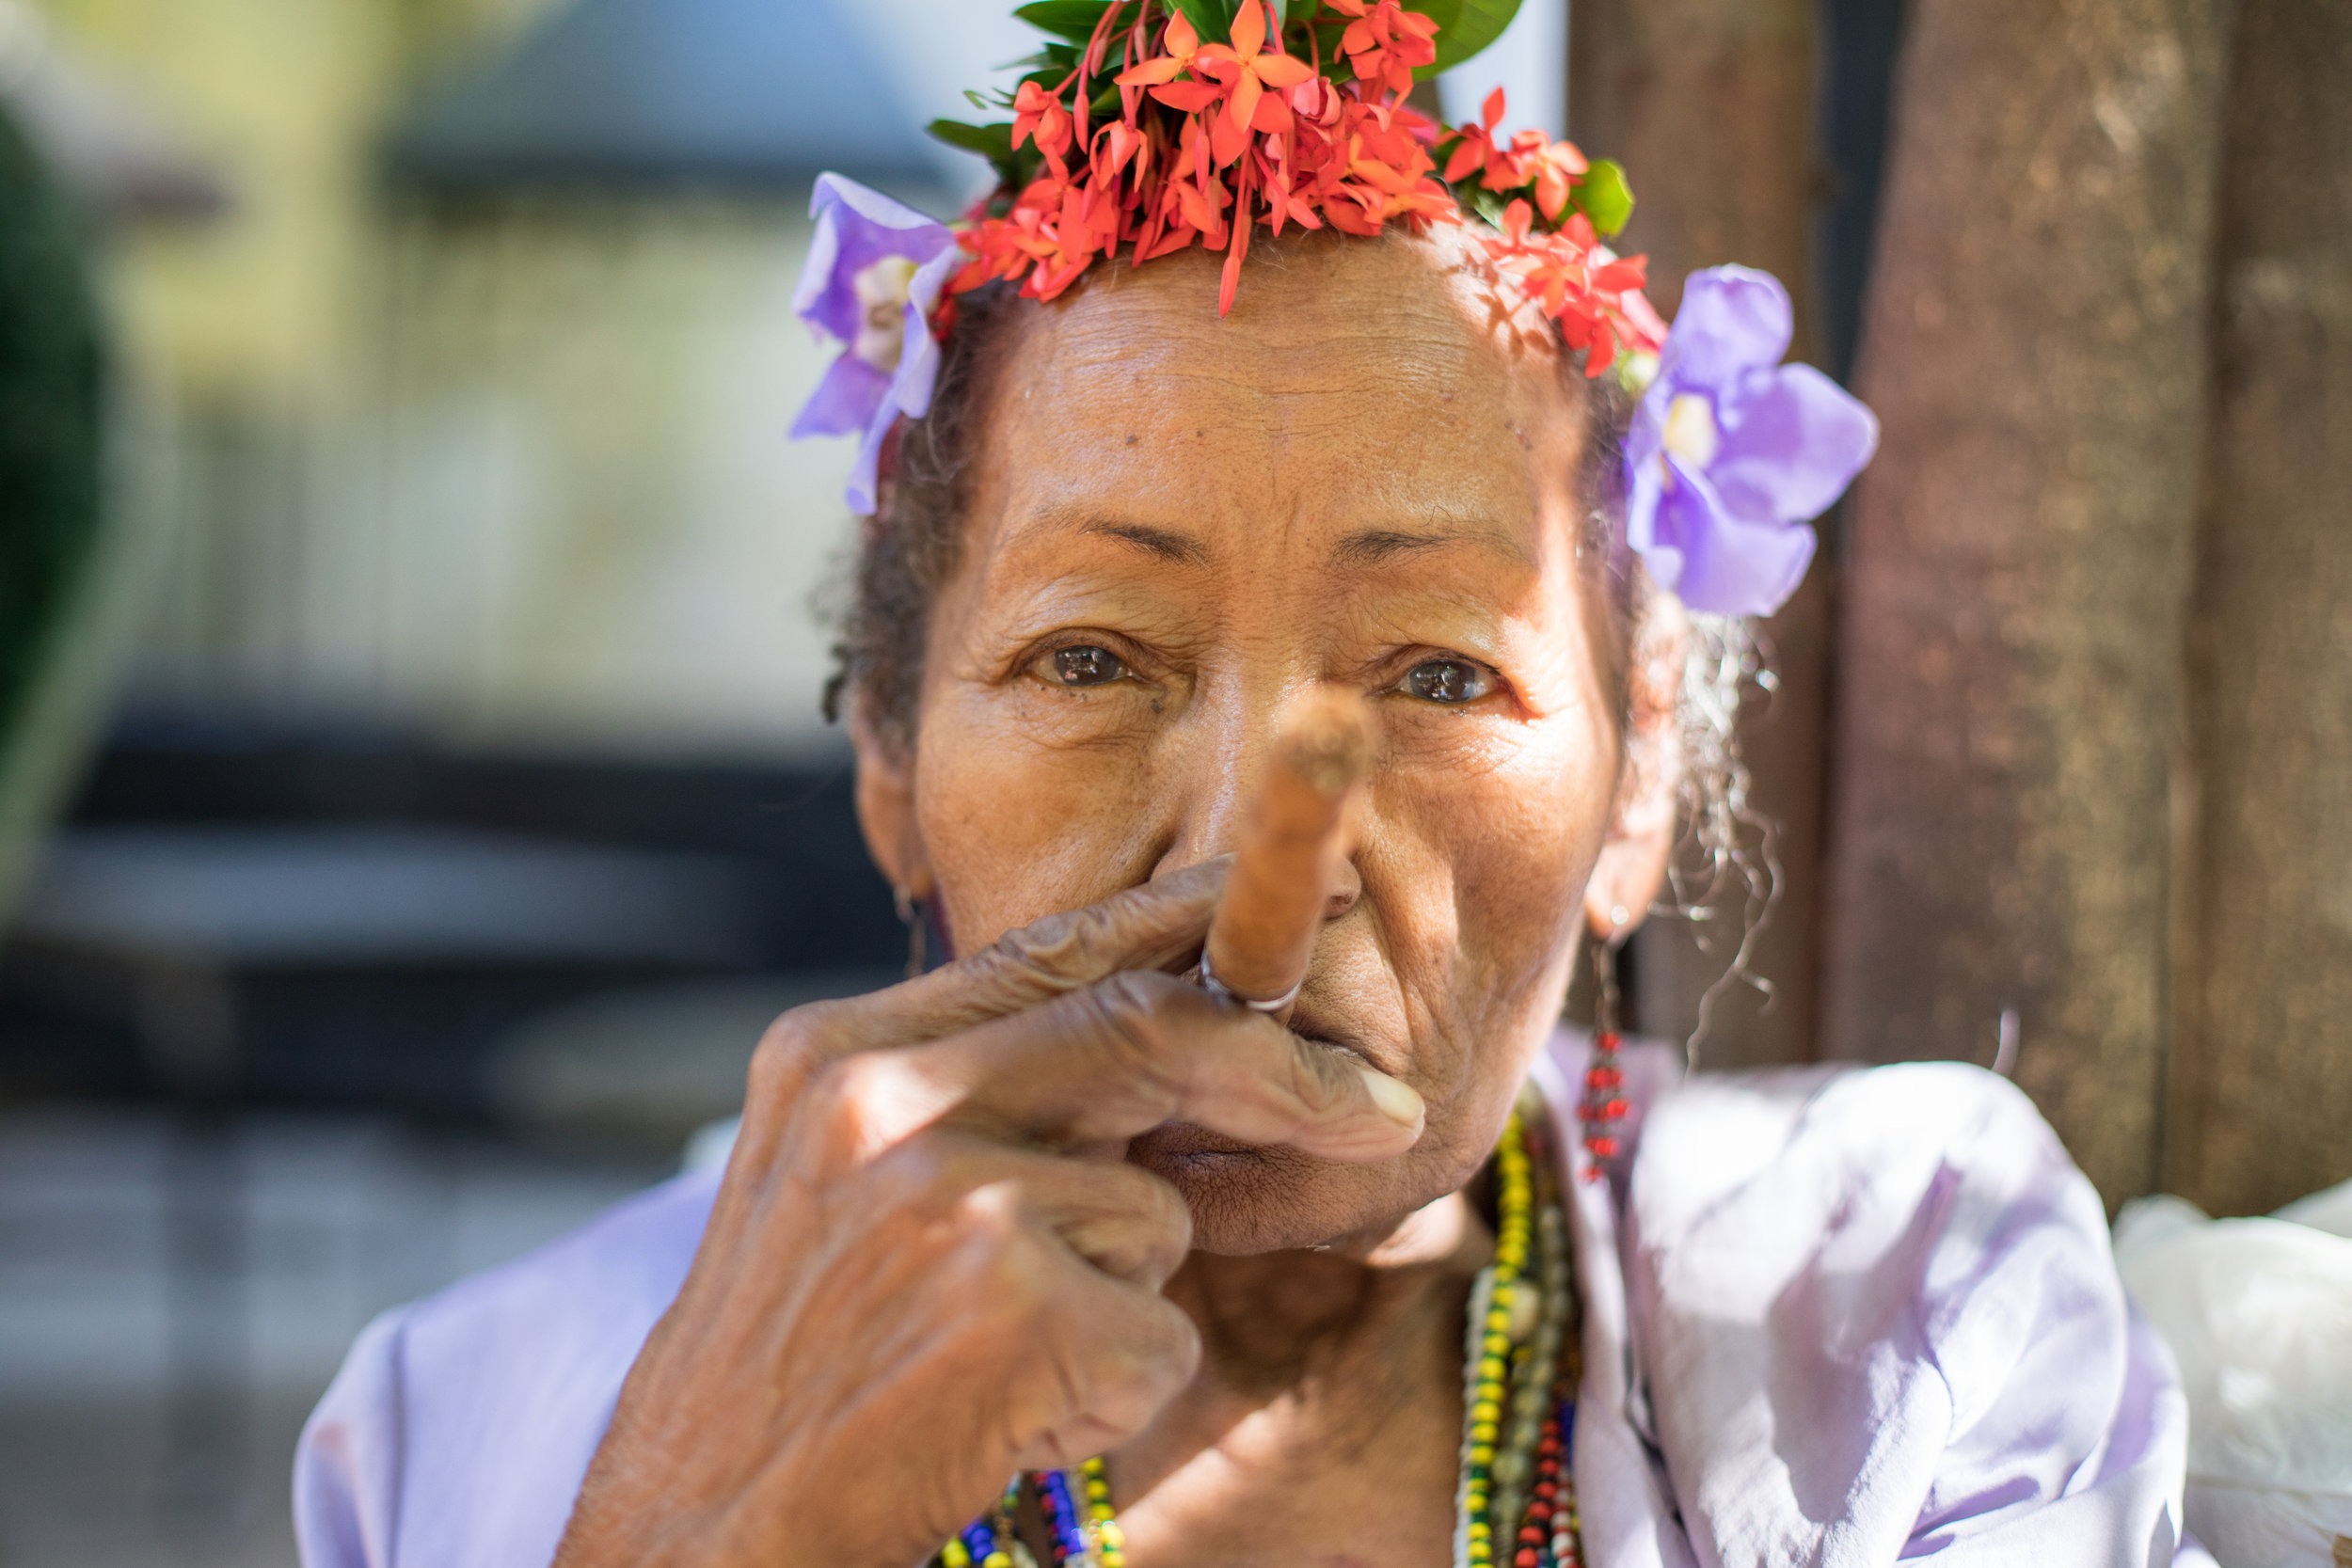 Ffotogallery Platform Instagram Takeover by Geraint Rowland - Elderly Cuban Woman smokes a cigar in Havana.